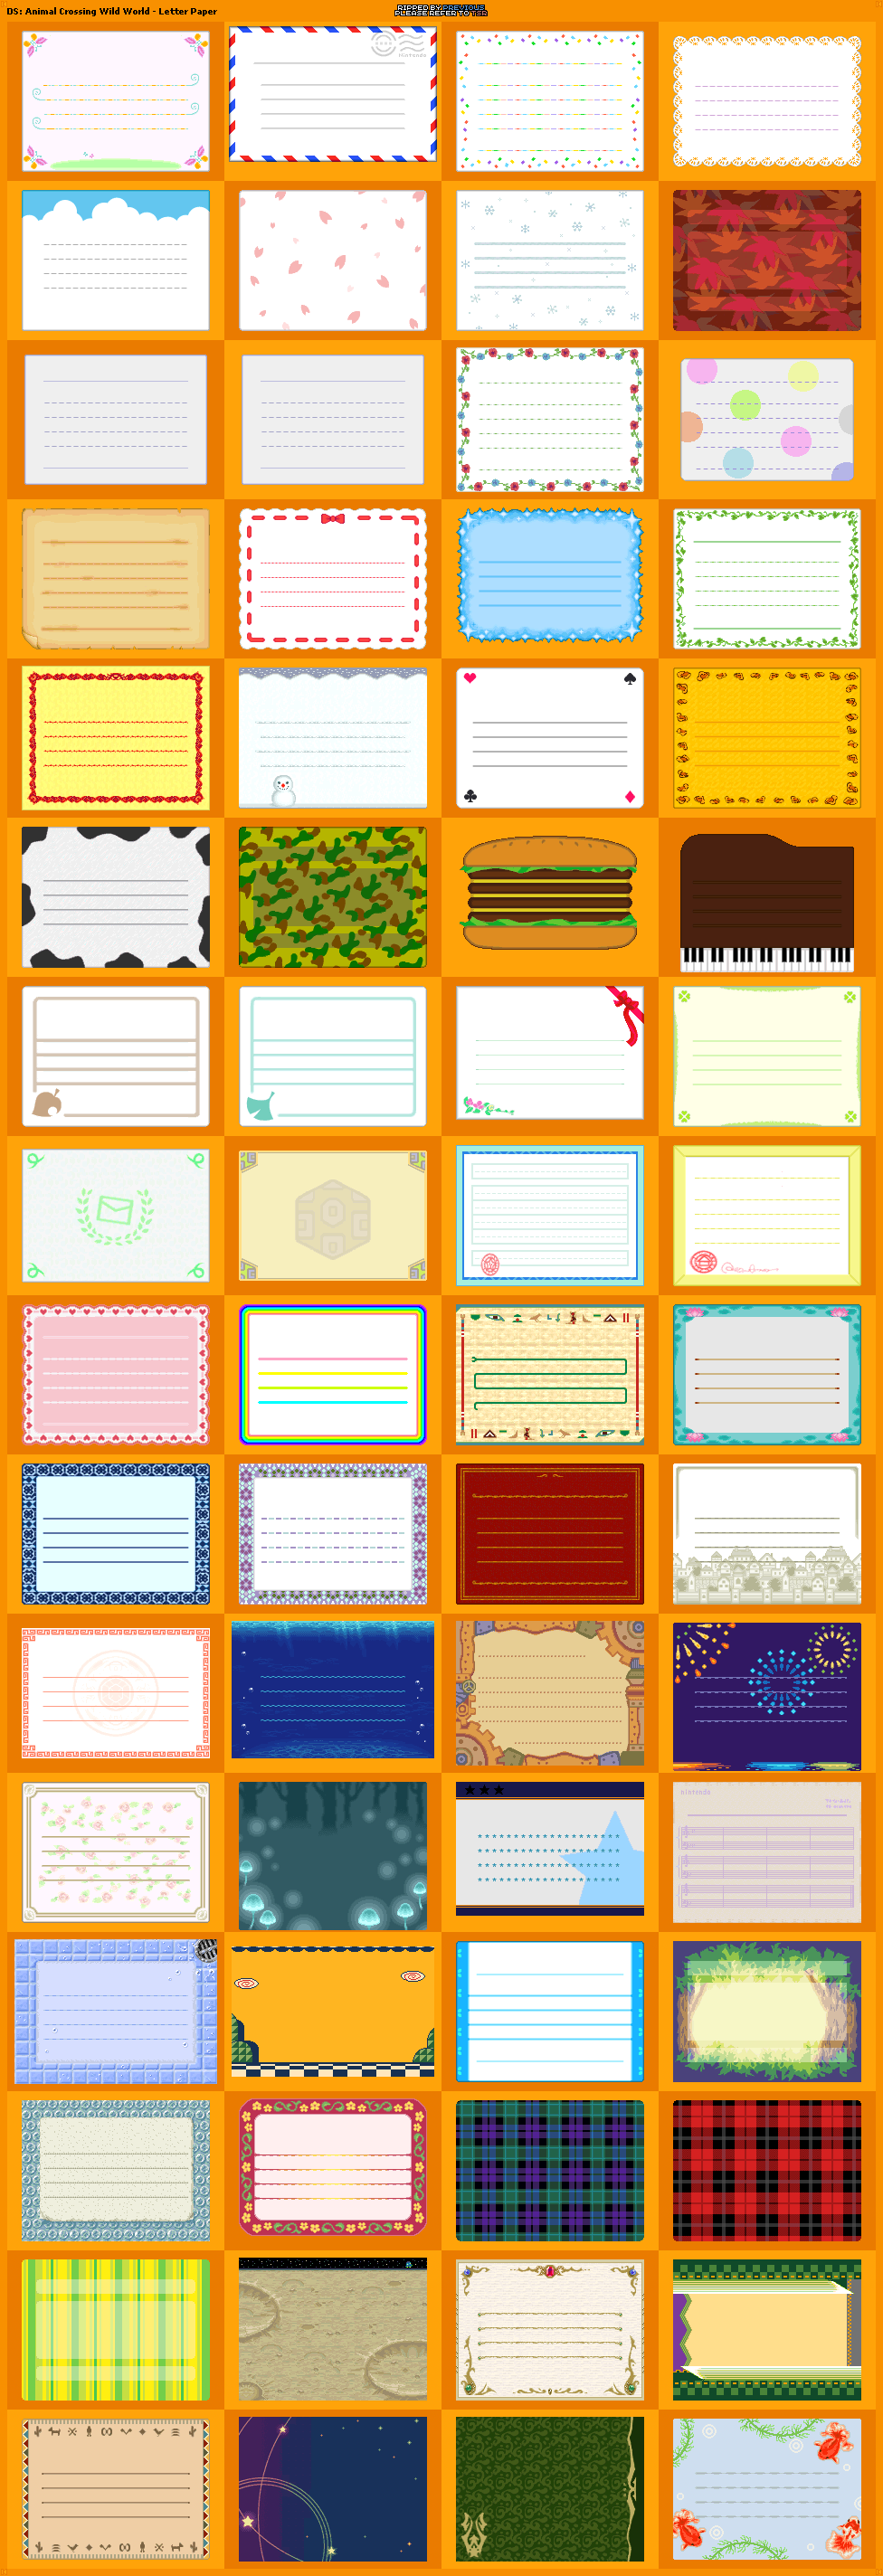 Ds Animal Crossing Wild World Letter Paper Animal Crossing Animal Crossing Guide Letter Paper